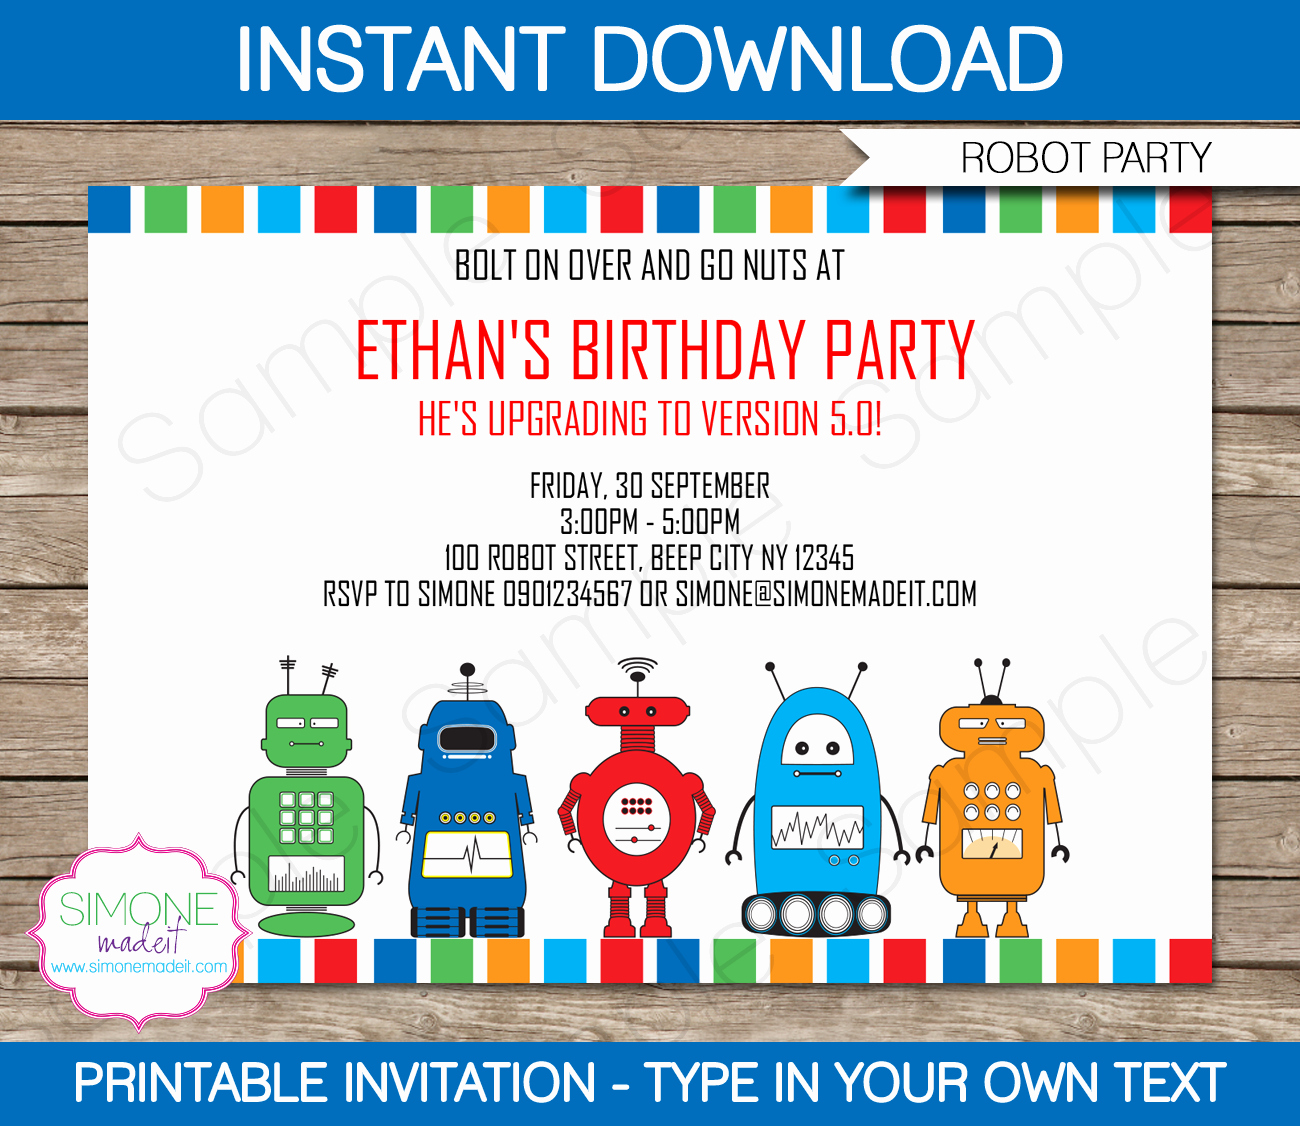 Birthday Party Invitation Template Luxury Robot Party Invitations Template